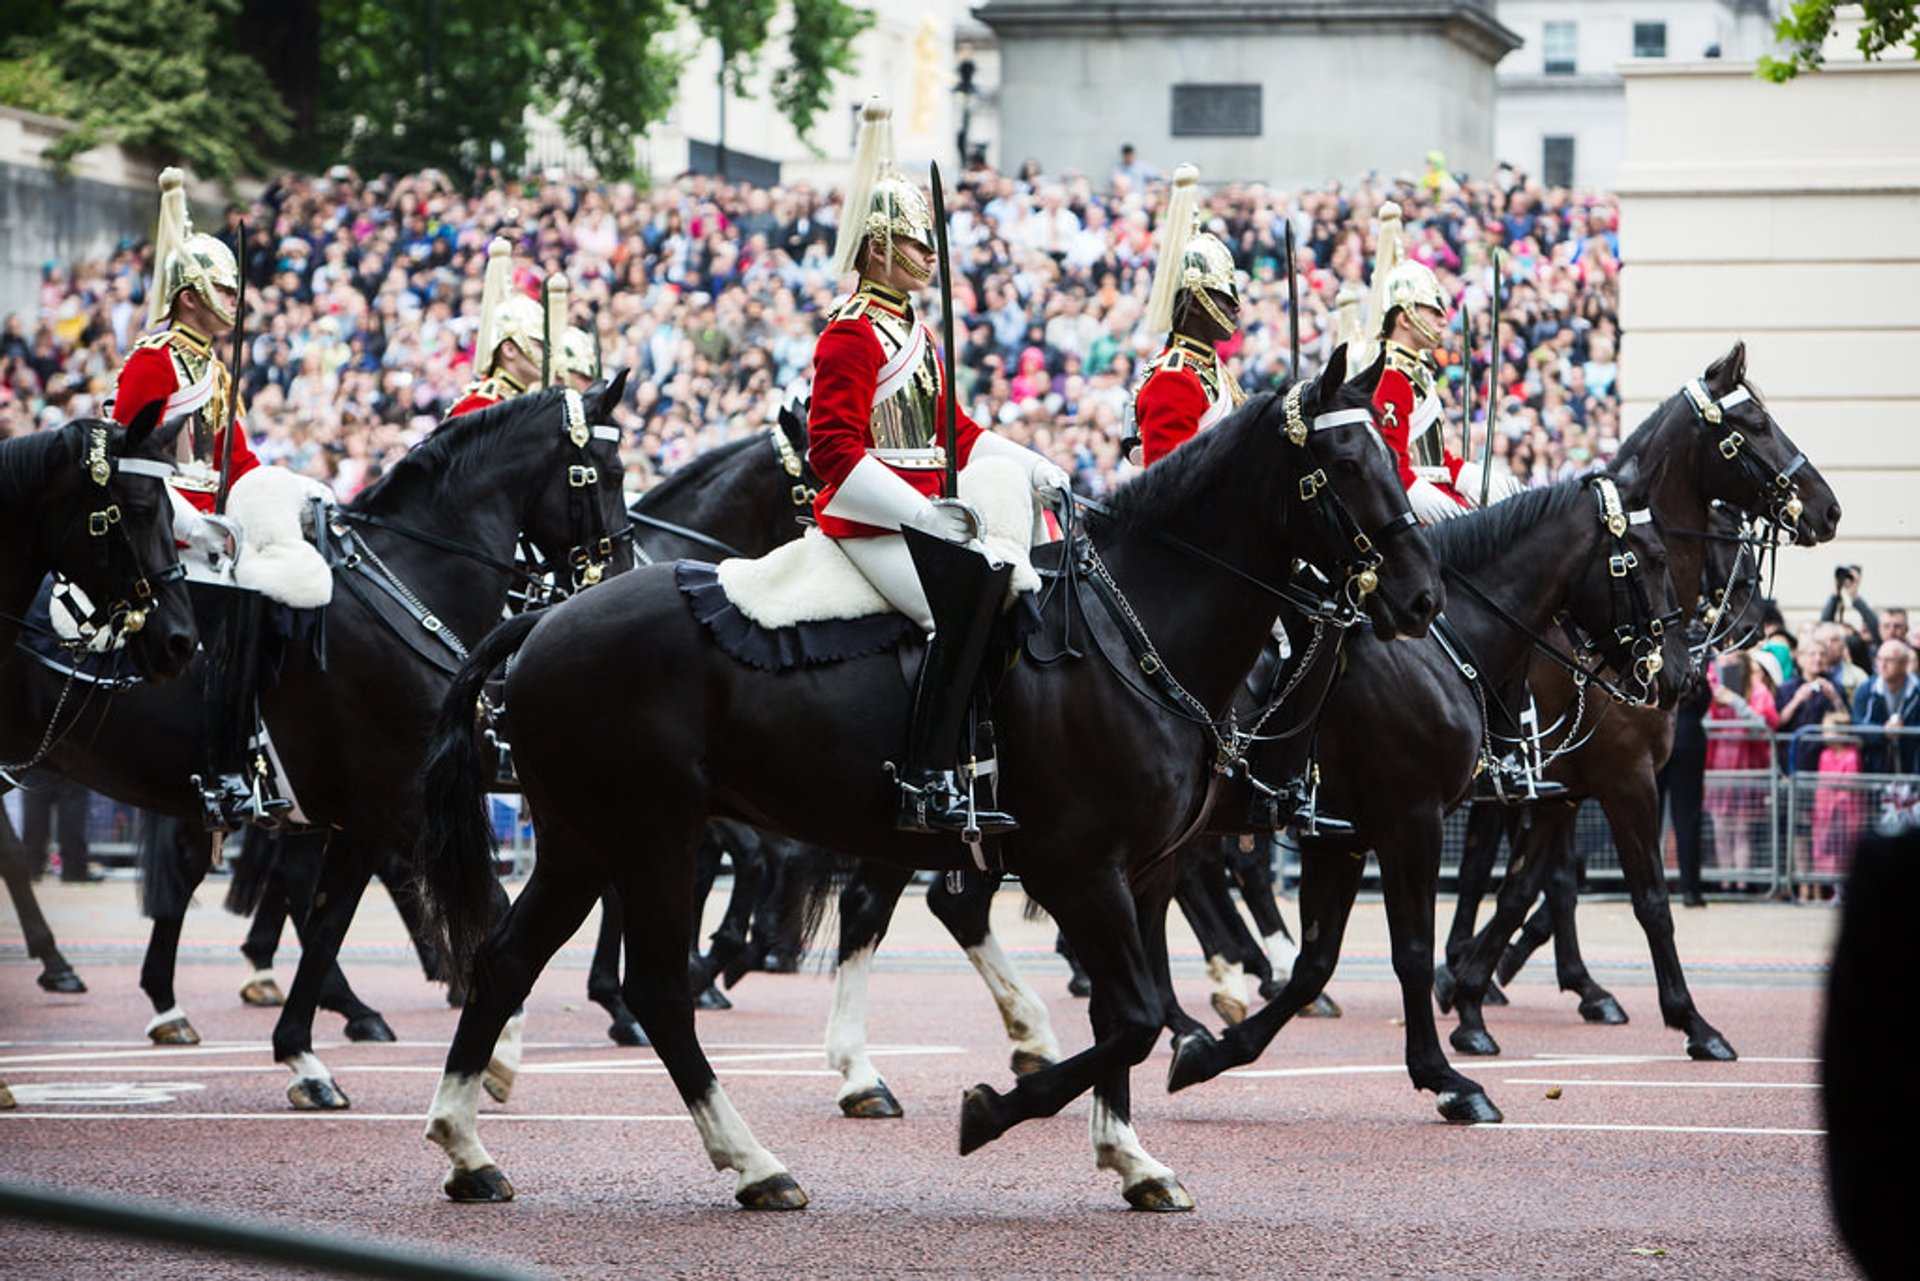 Best time to see Trooping the Colour & The Queen's Birthday Parade in London 2020